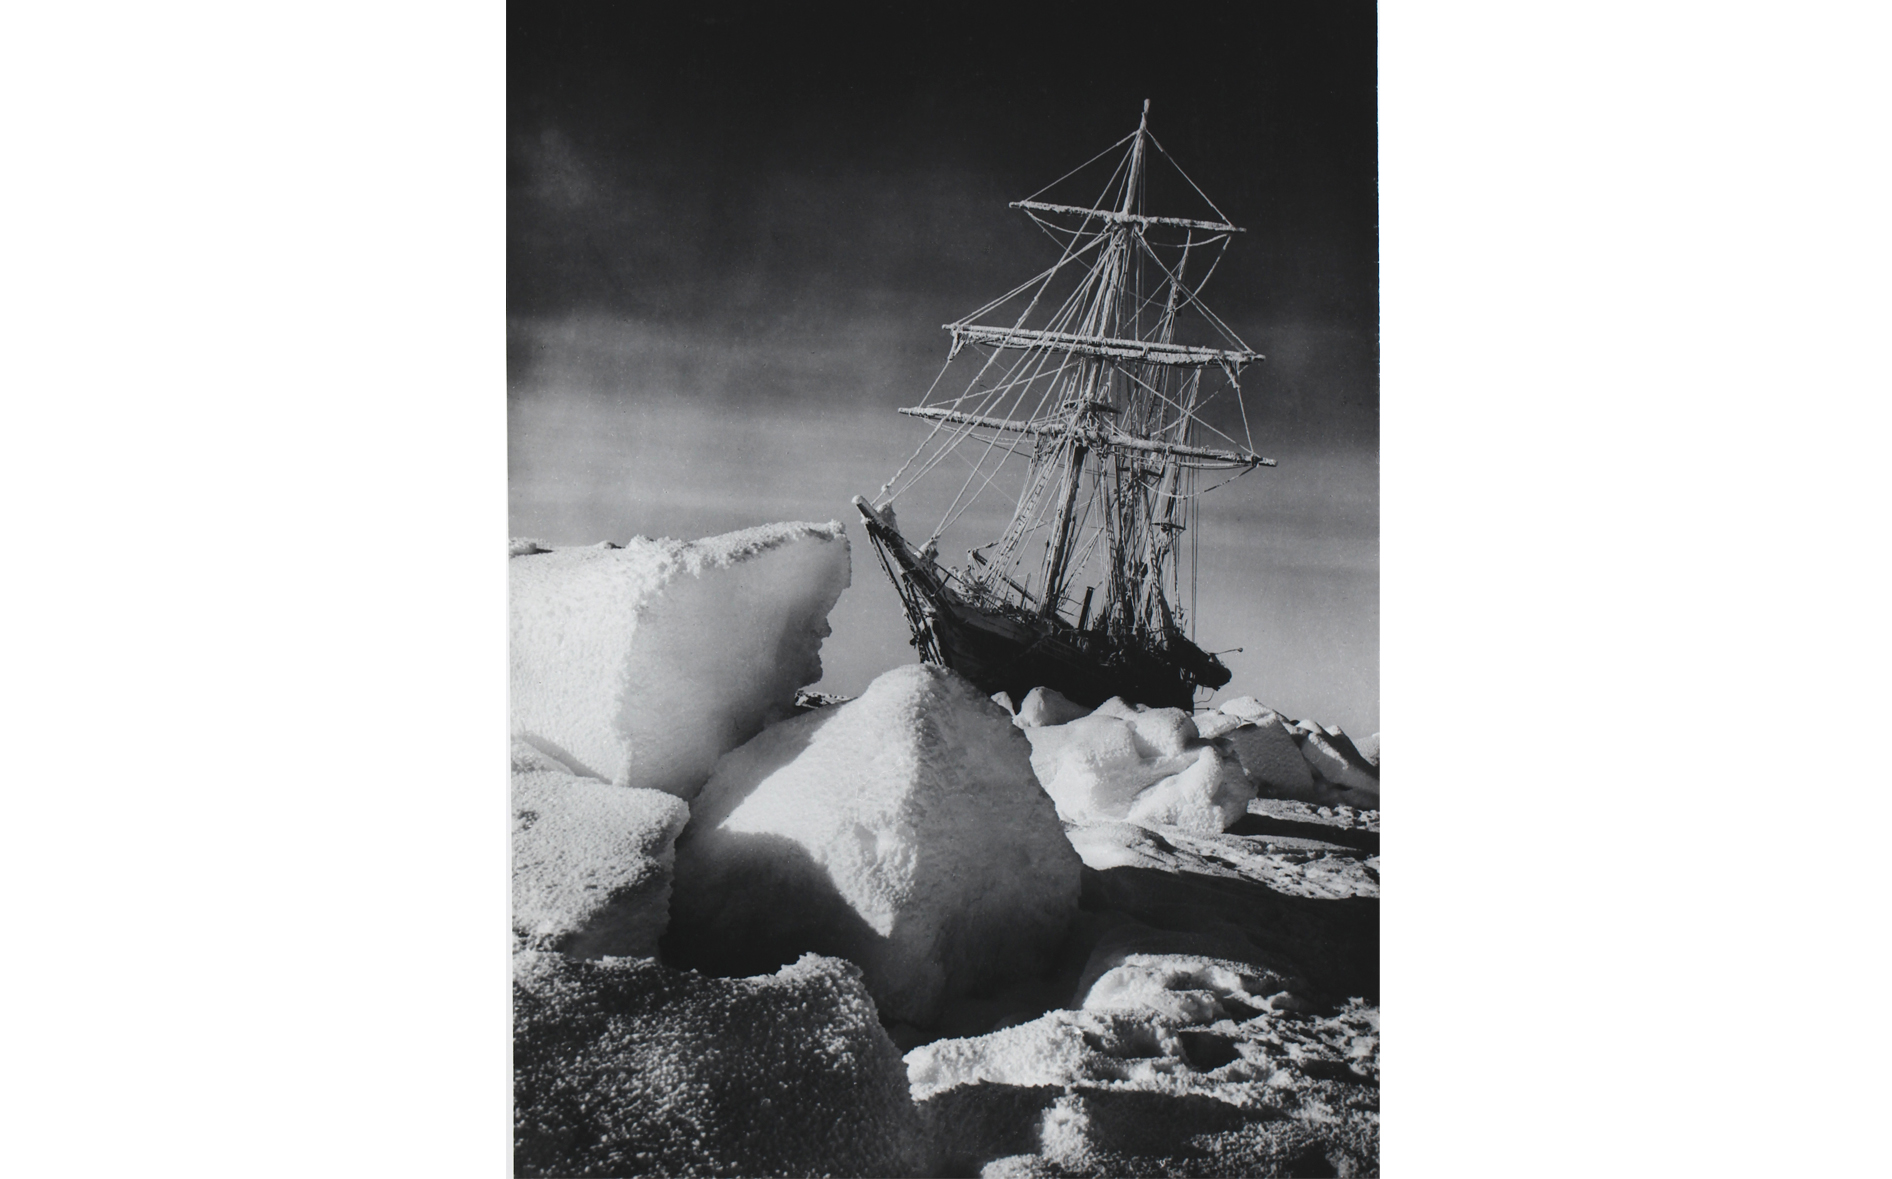 Frank Hurley, printed for The Royal Geographic Society